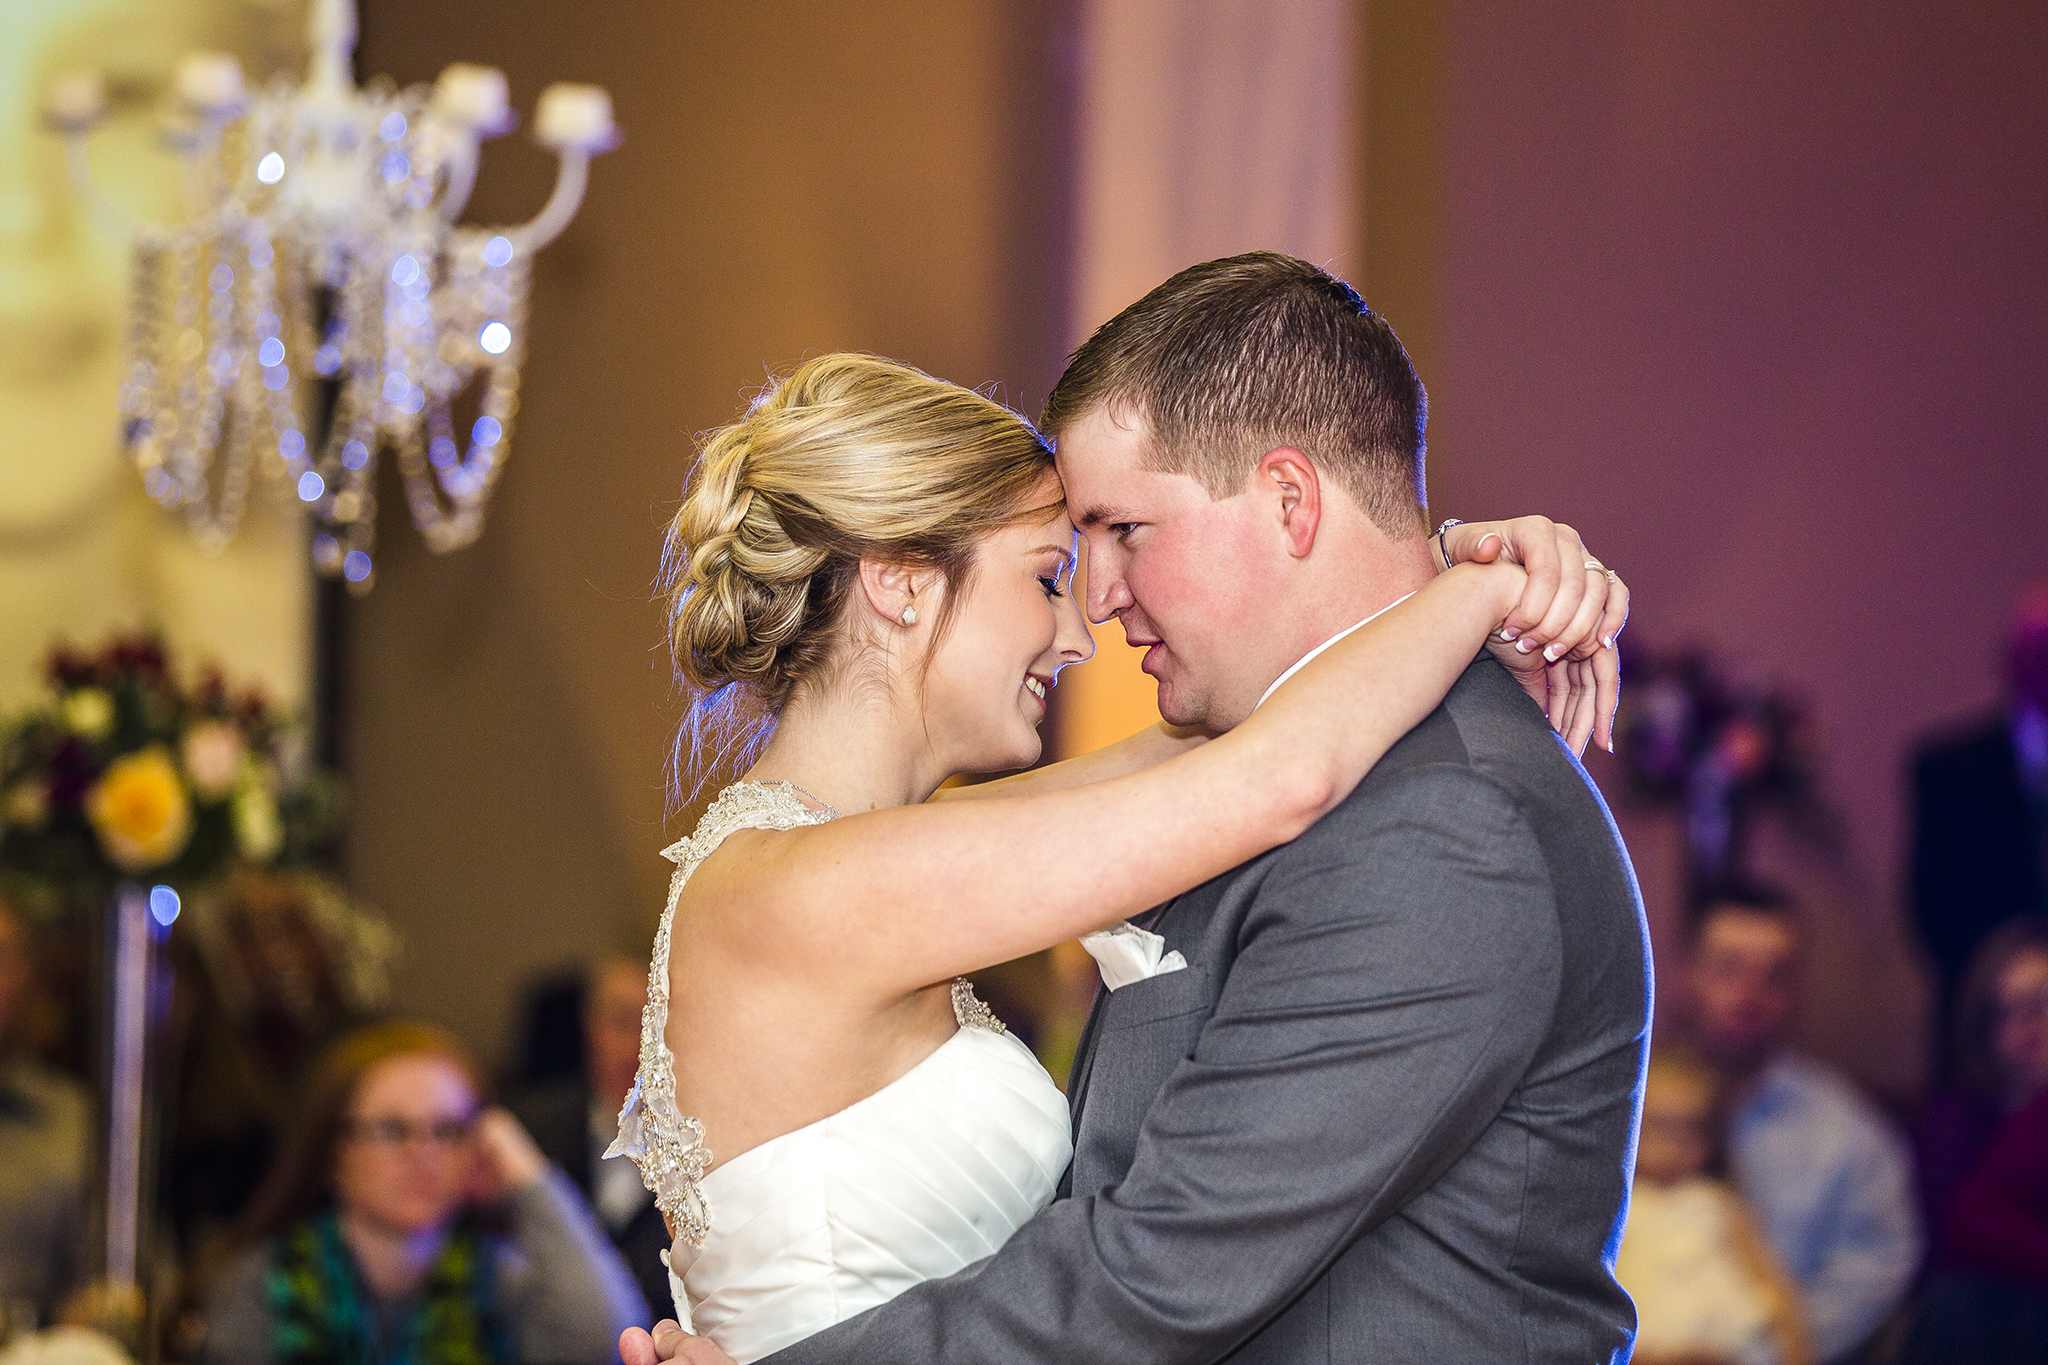 first dance, romantic, bride and groom, wedding reception, love, sweet